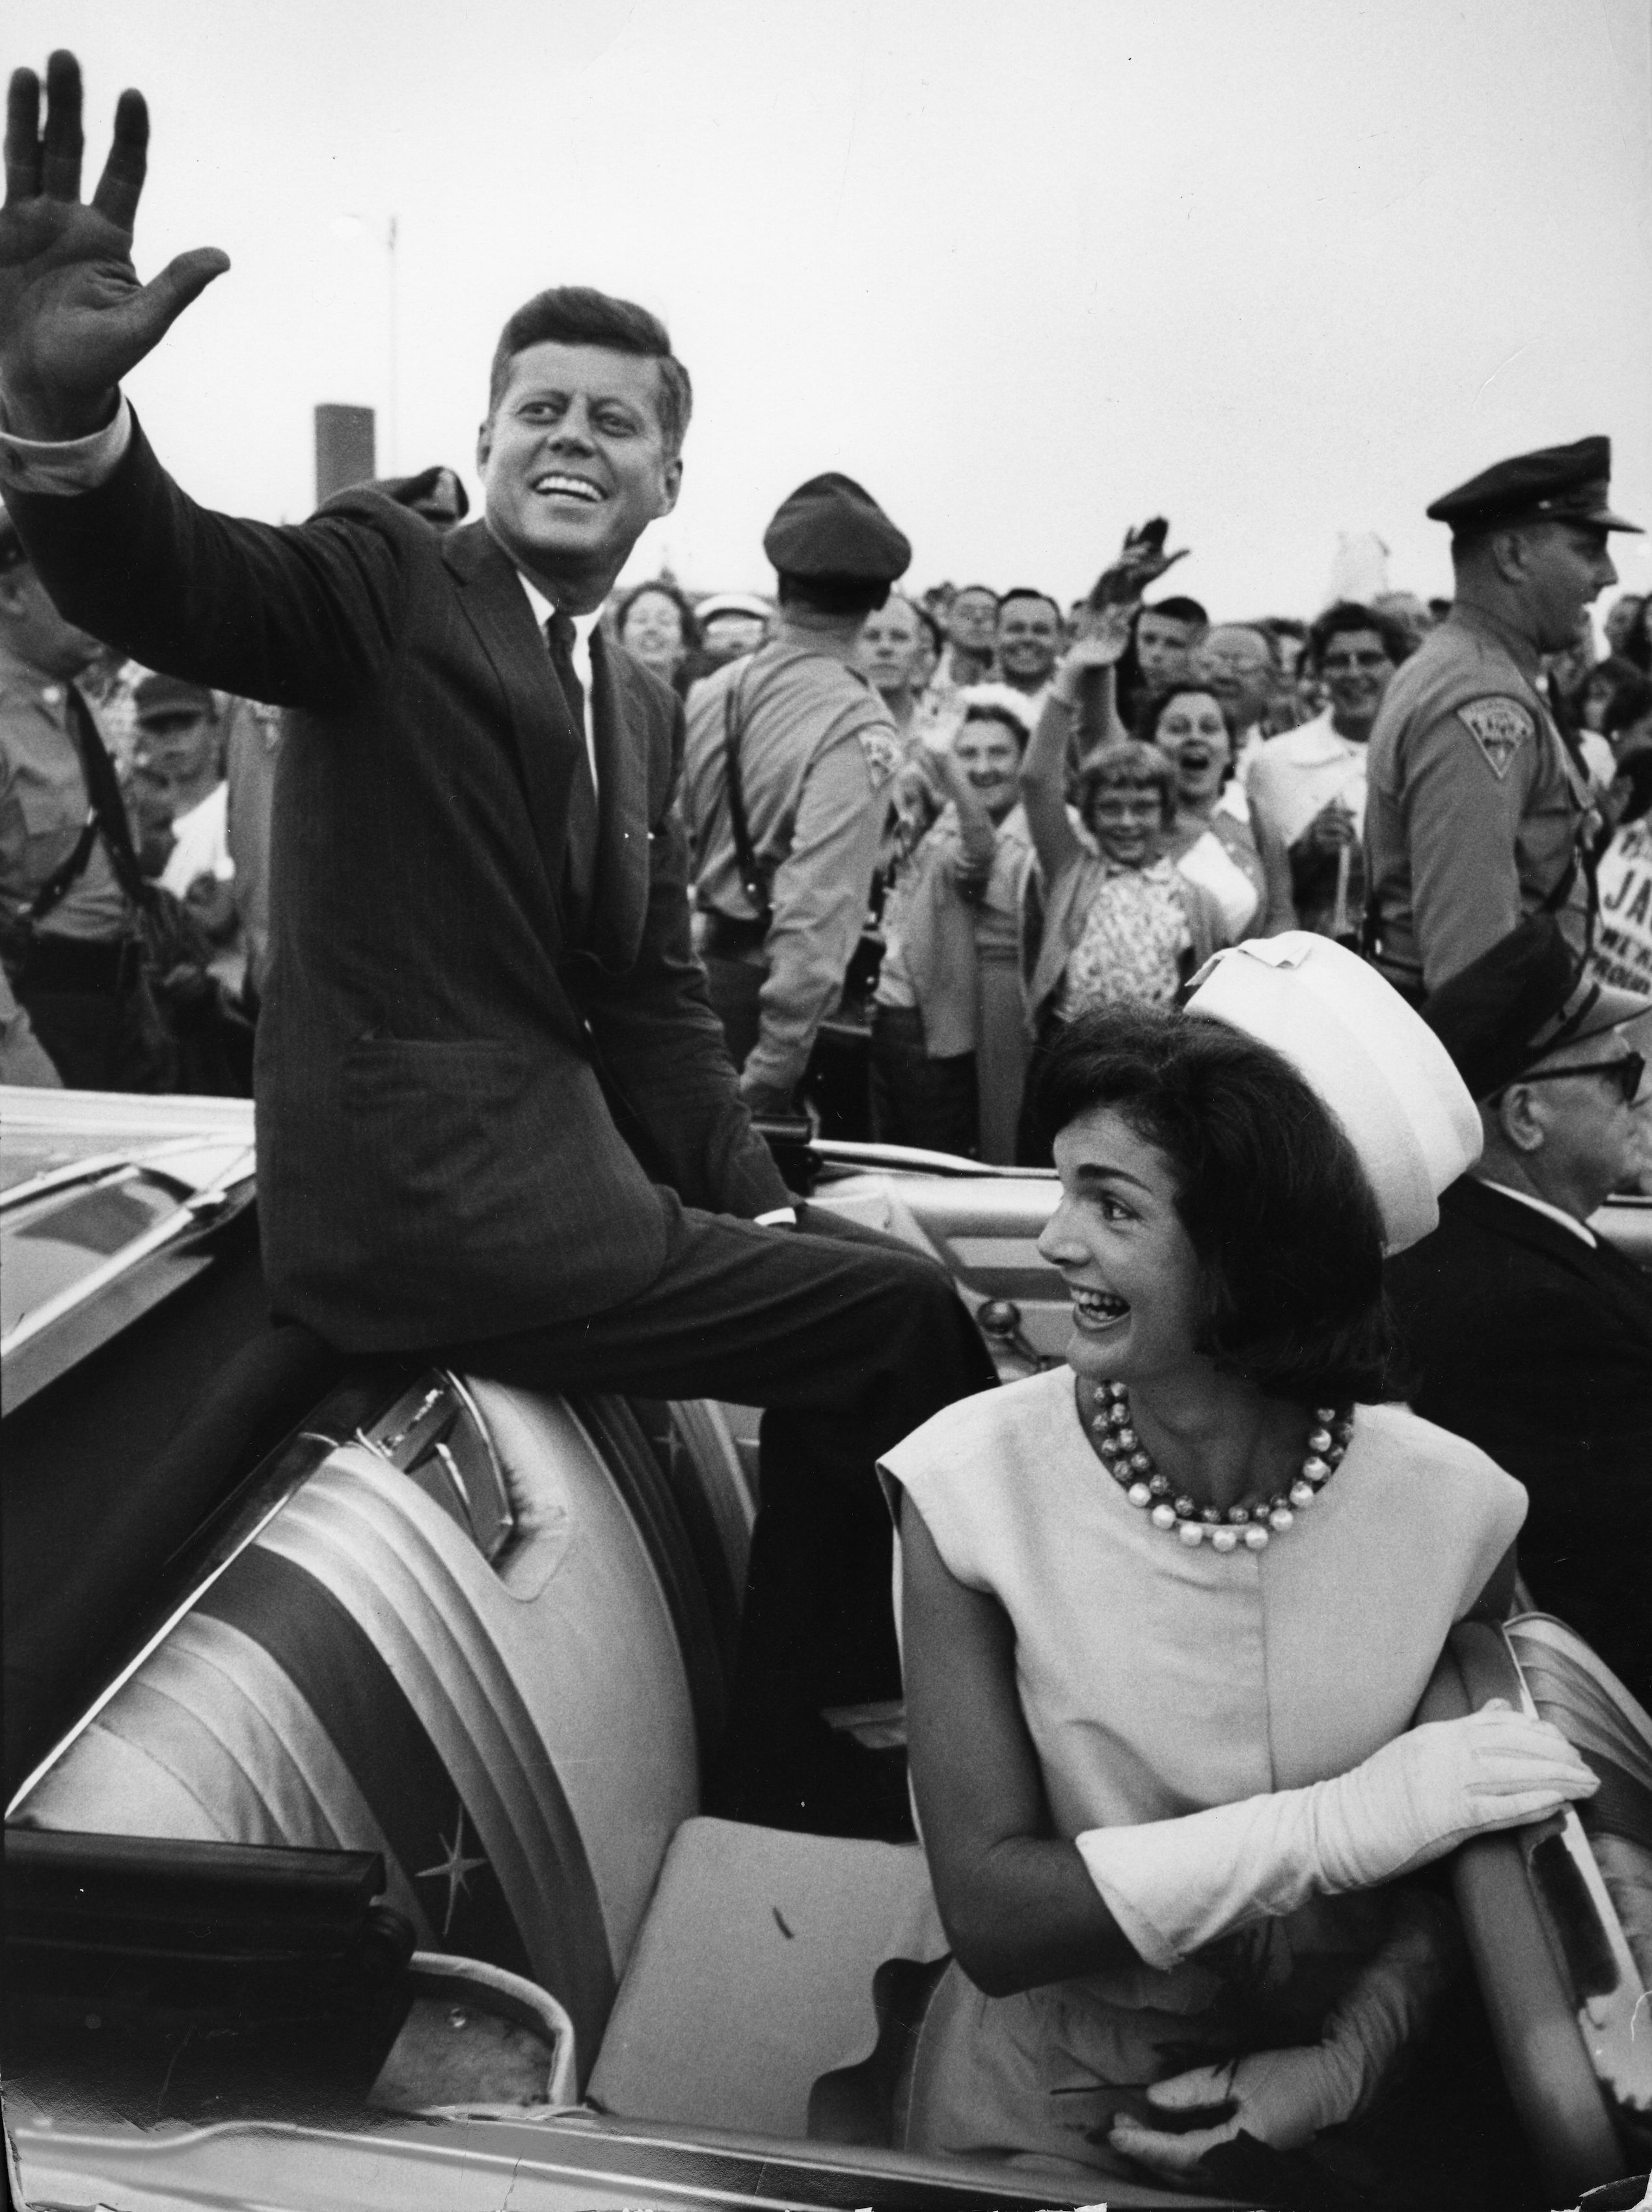 Jackie and her husband wave to crowds in Massachusetts during the beginning of his presidential campaign.